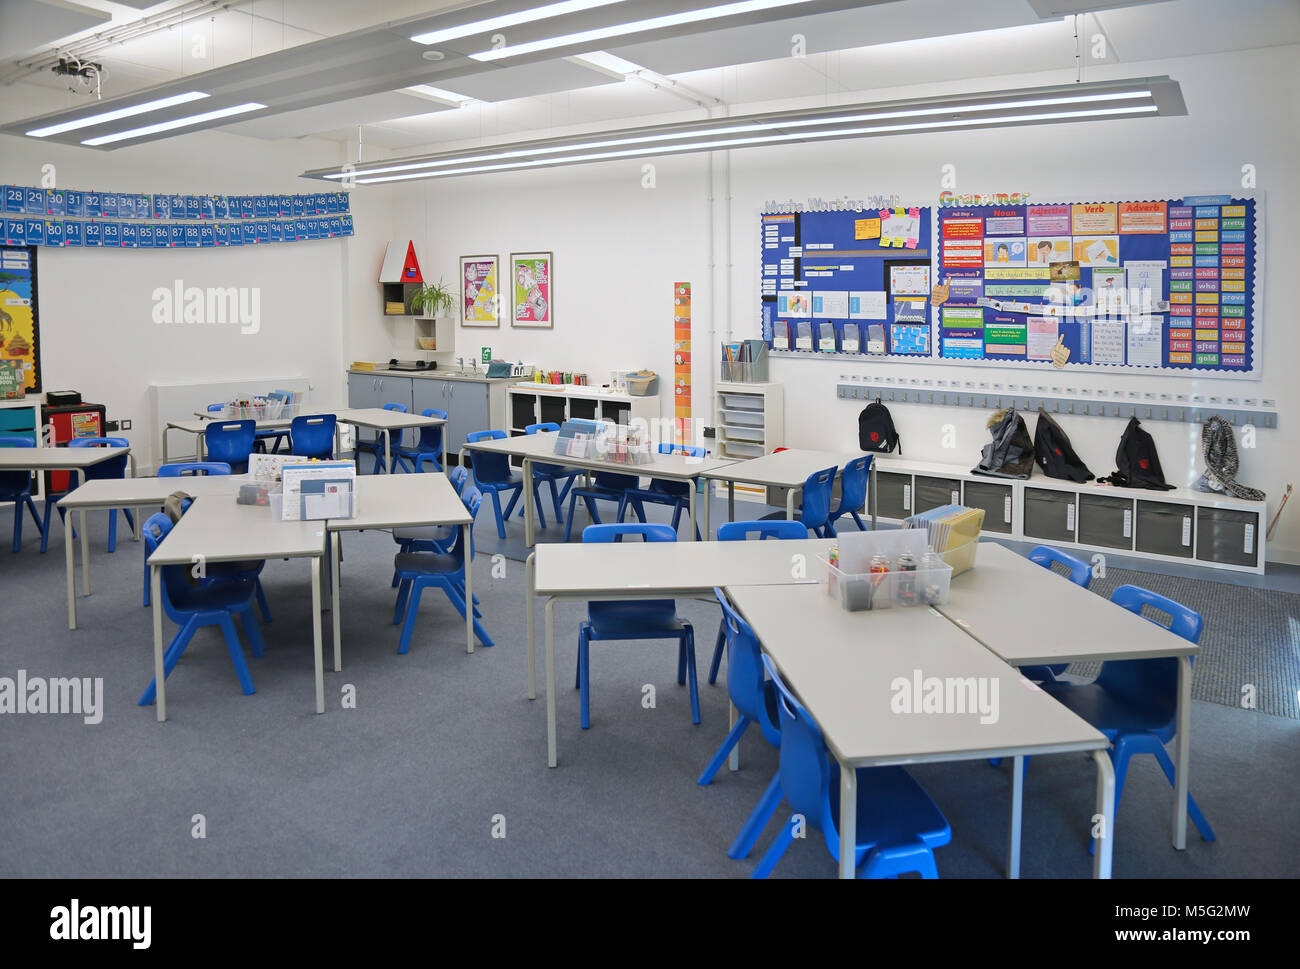 Classroom In A Newly Built London Primary School. Shows Desks Arranged Into  Groups.